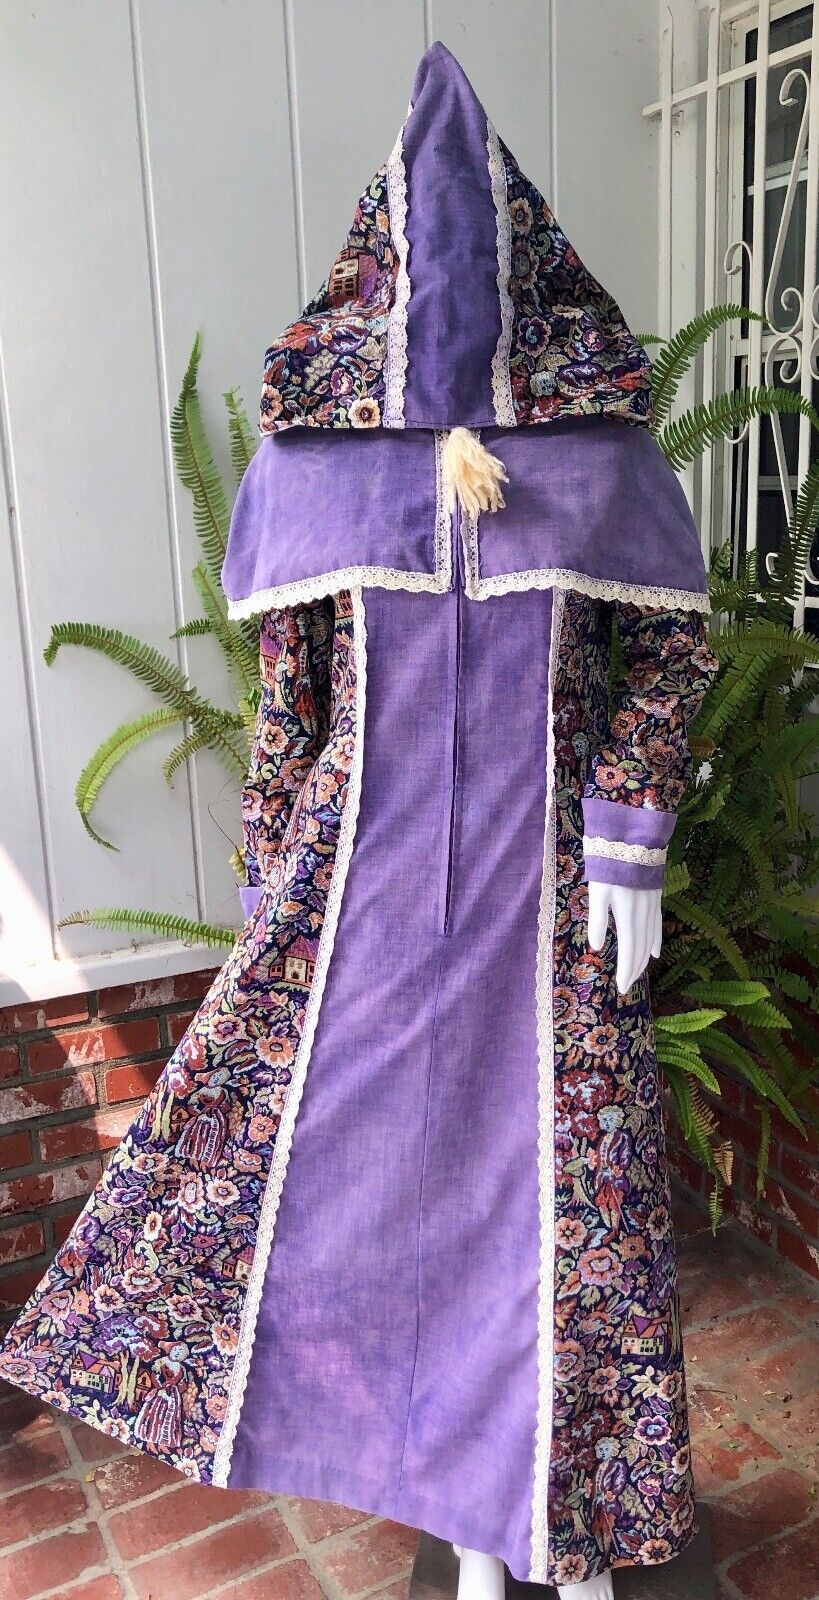 VTG Black Label Gunne Sax Tapestry Brocade Print Maxi Dress with Hood S/M AS IS